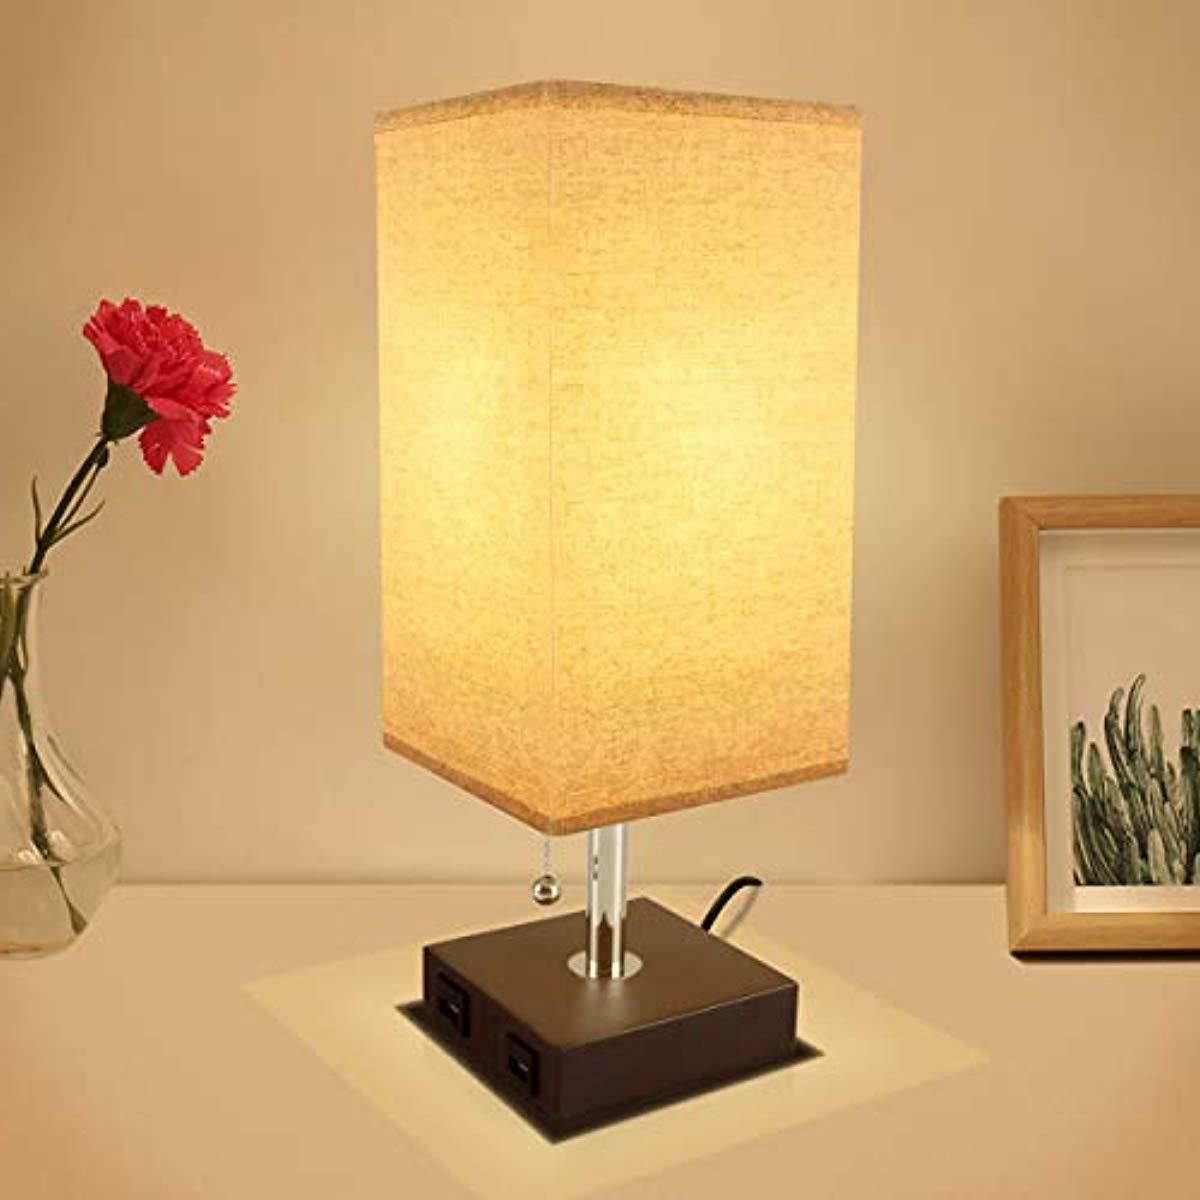 USB Table Lamp, Acaxin Dual Quick Port,